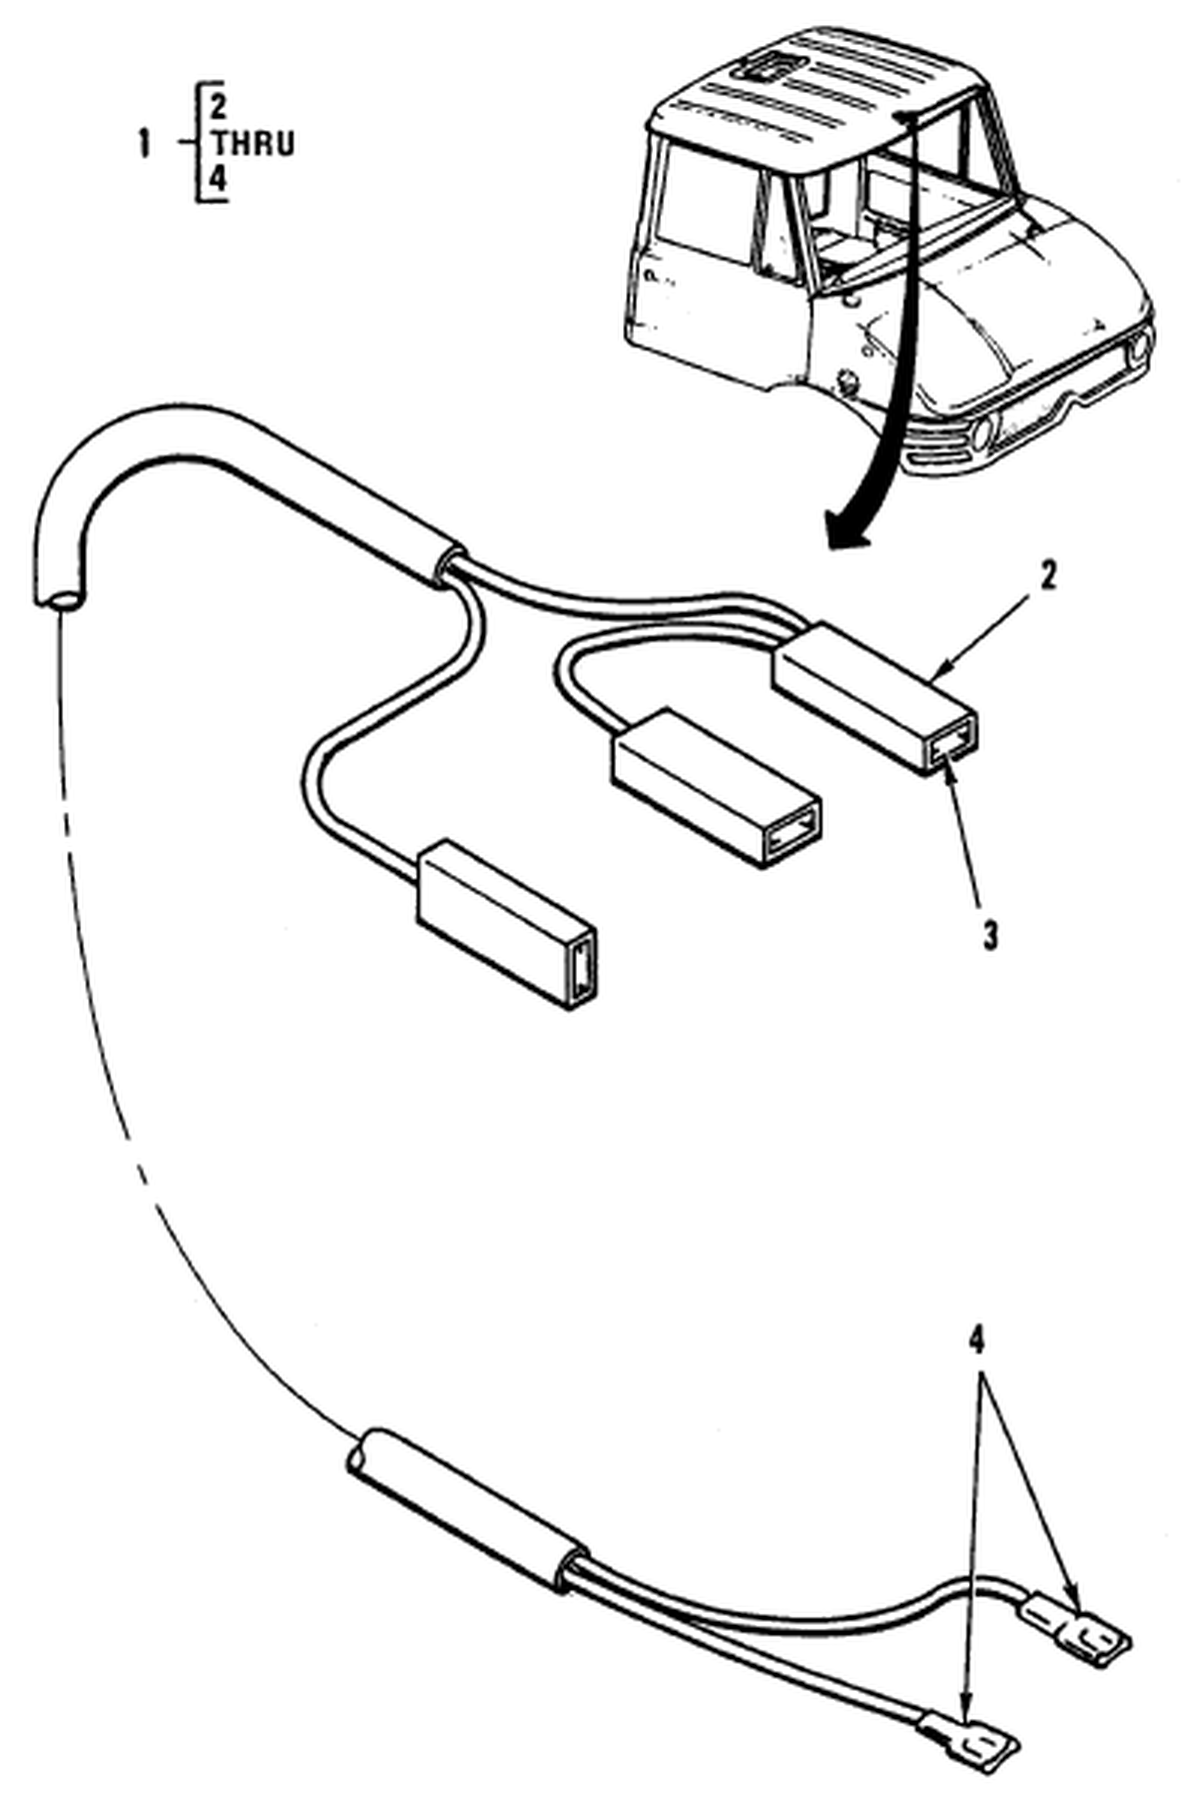 0090 00-2 Figure 89. Hull or Chassis Wiring Harness